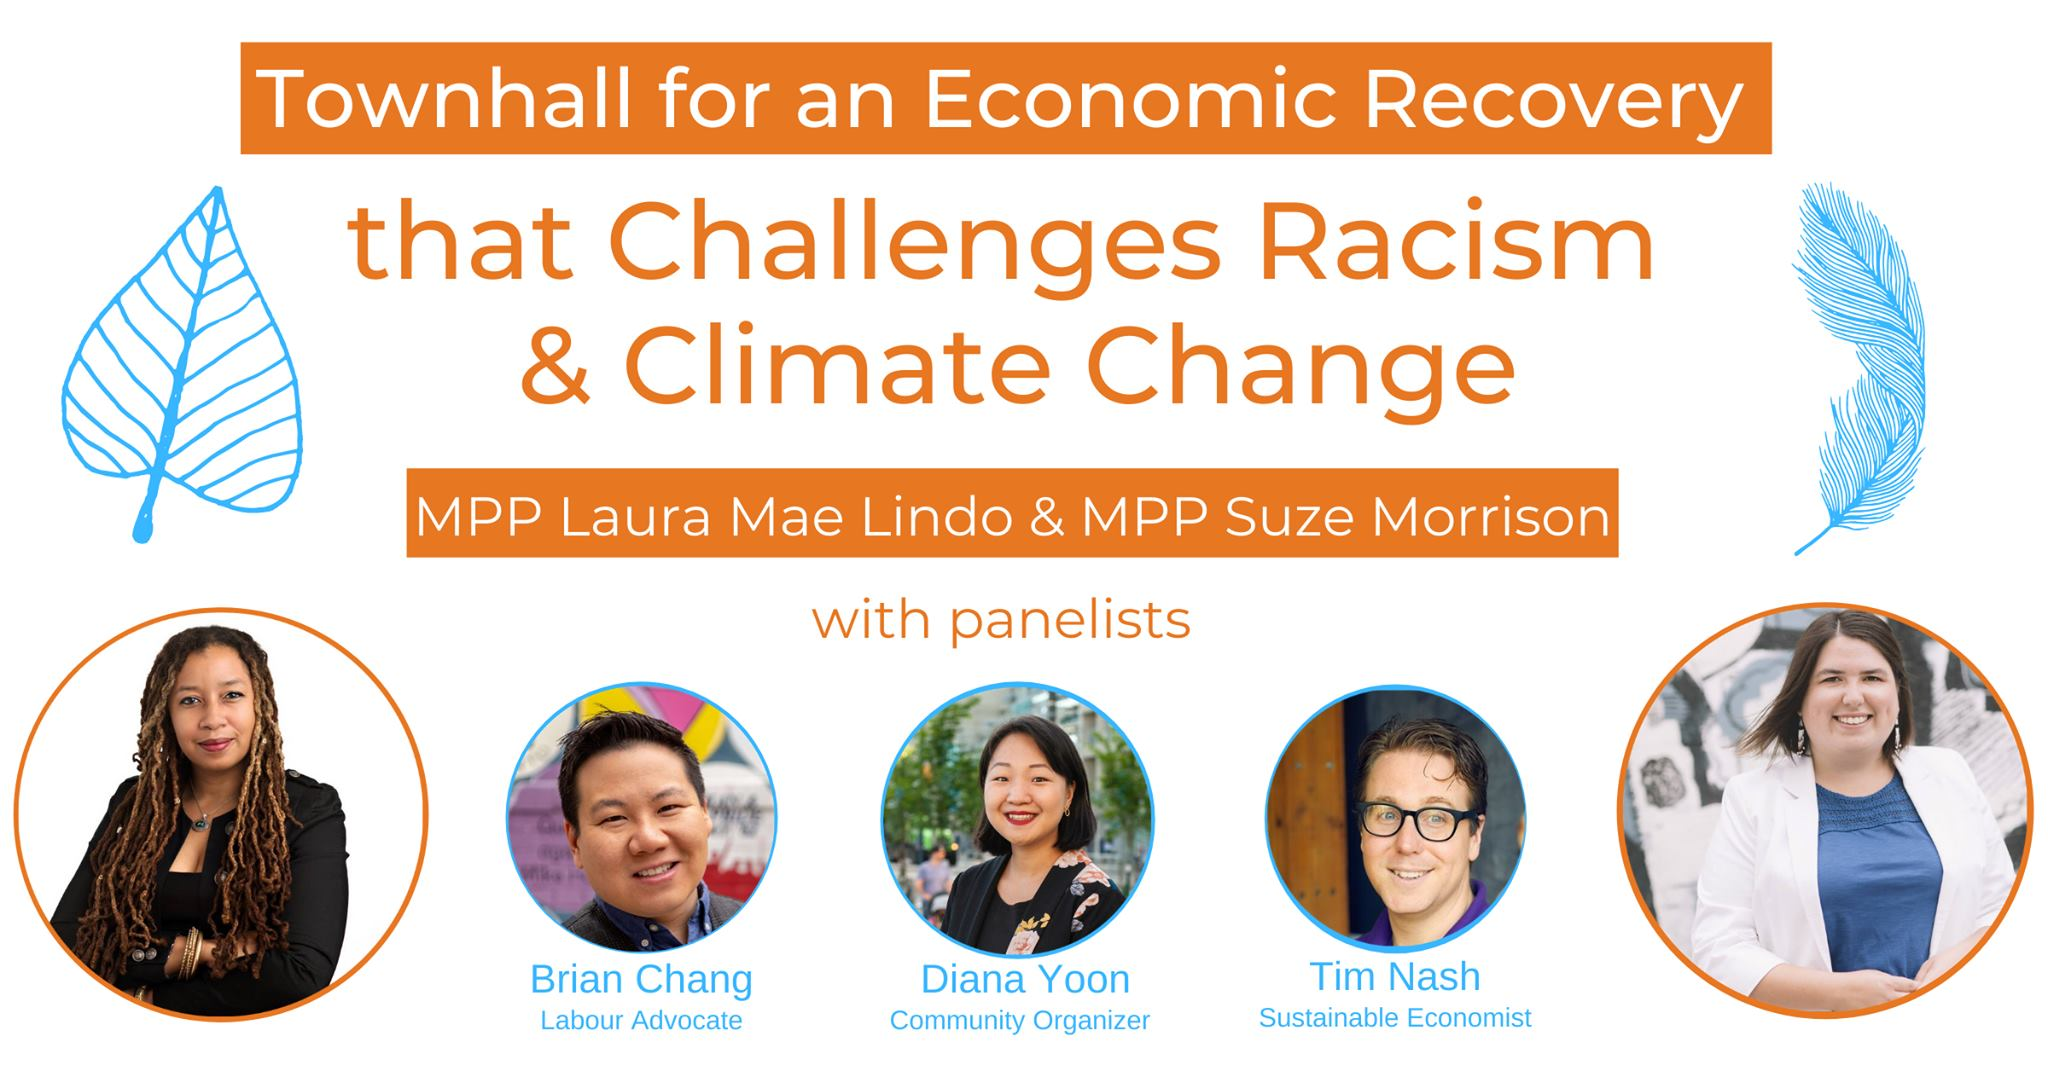 Poster for Townhall for an Economic Recovery that Challenges Racism and Climate Change. The poster includes pictures of the hosts and panelists. All event details are in the below text.